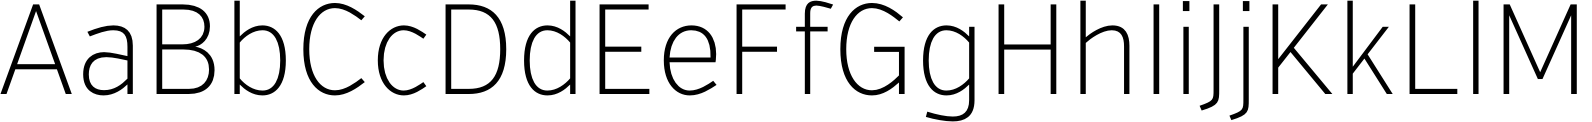 VerbCond Extralight Font